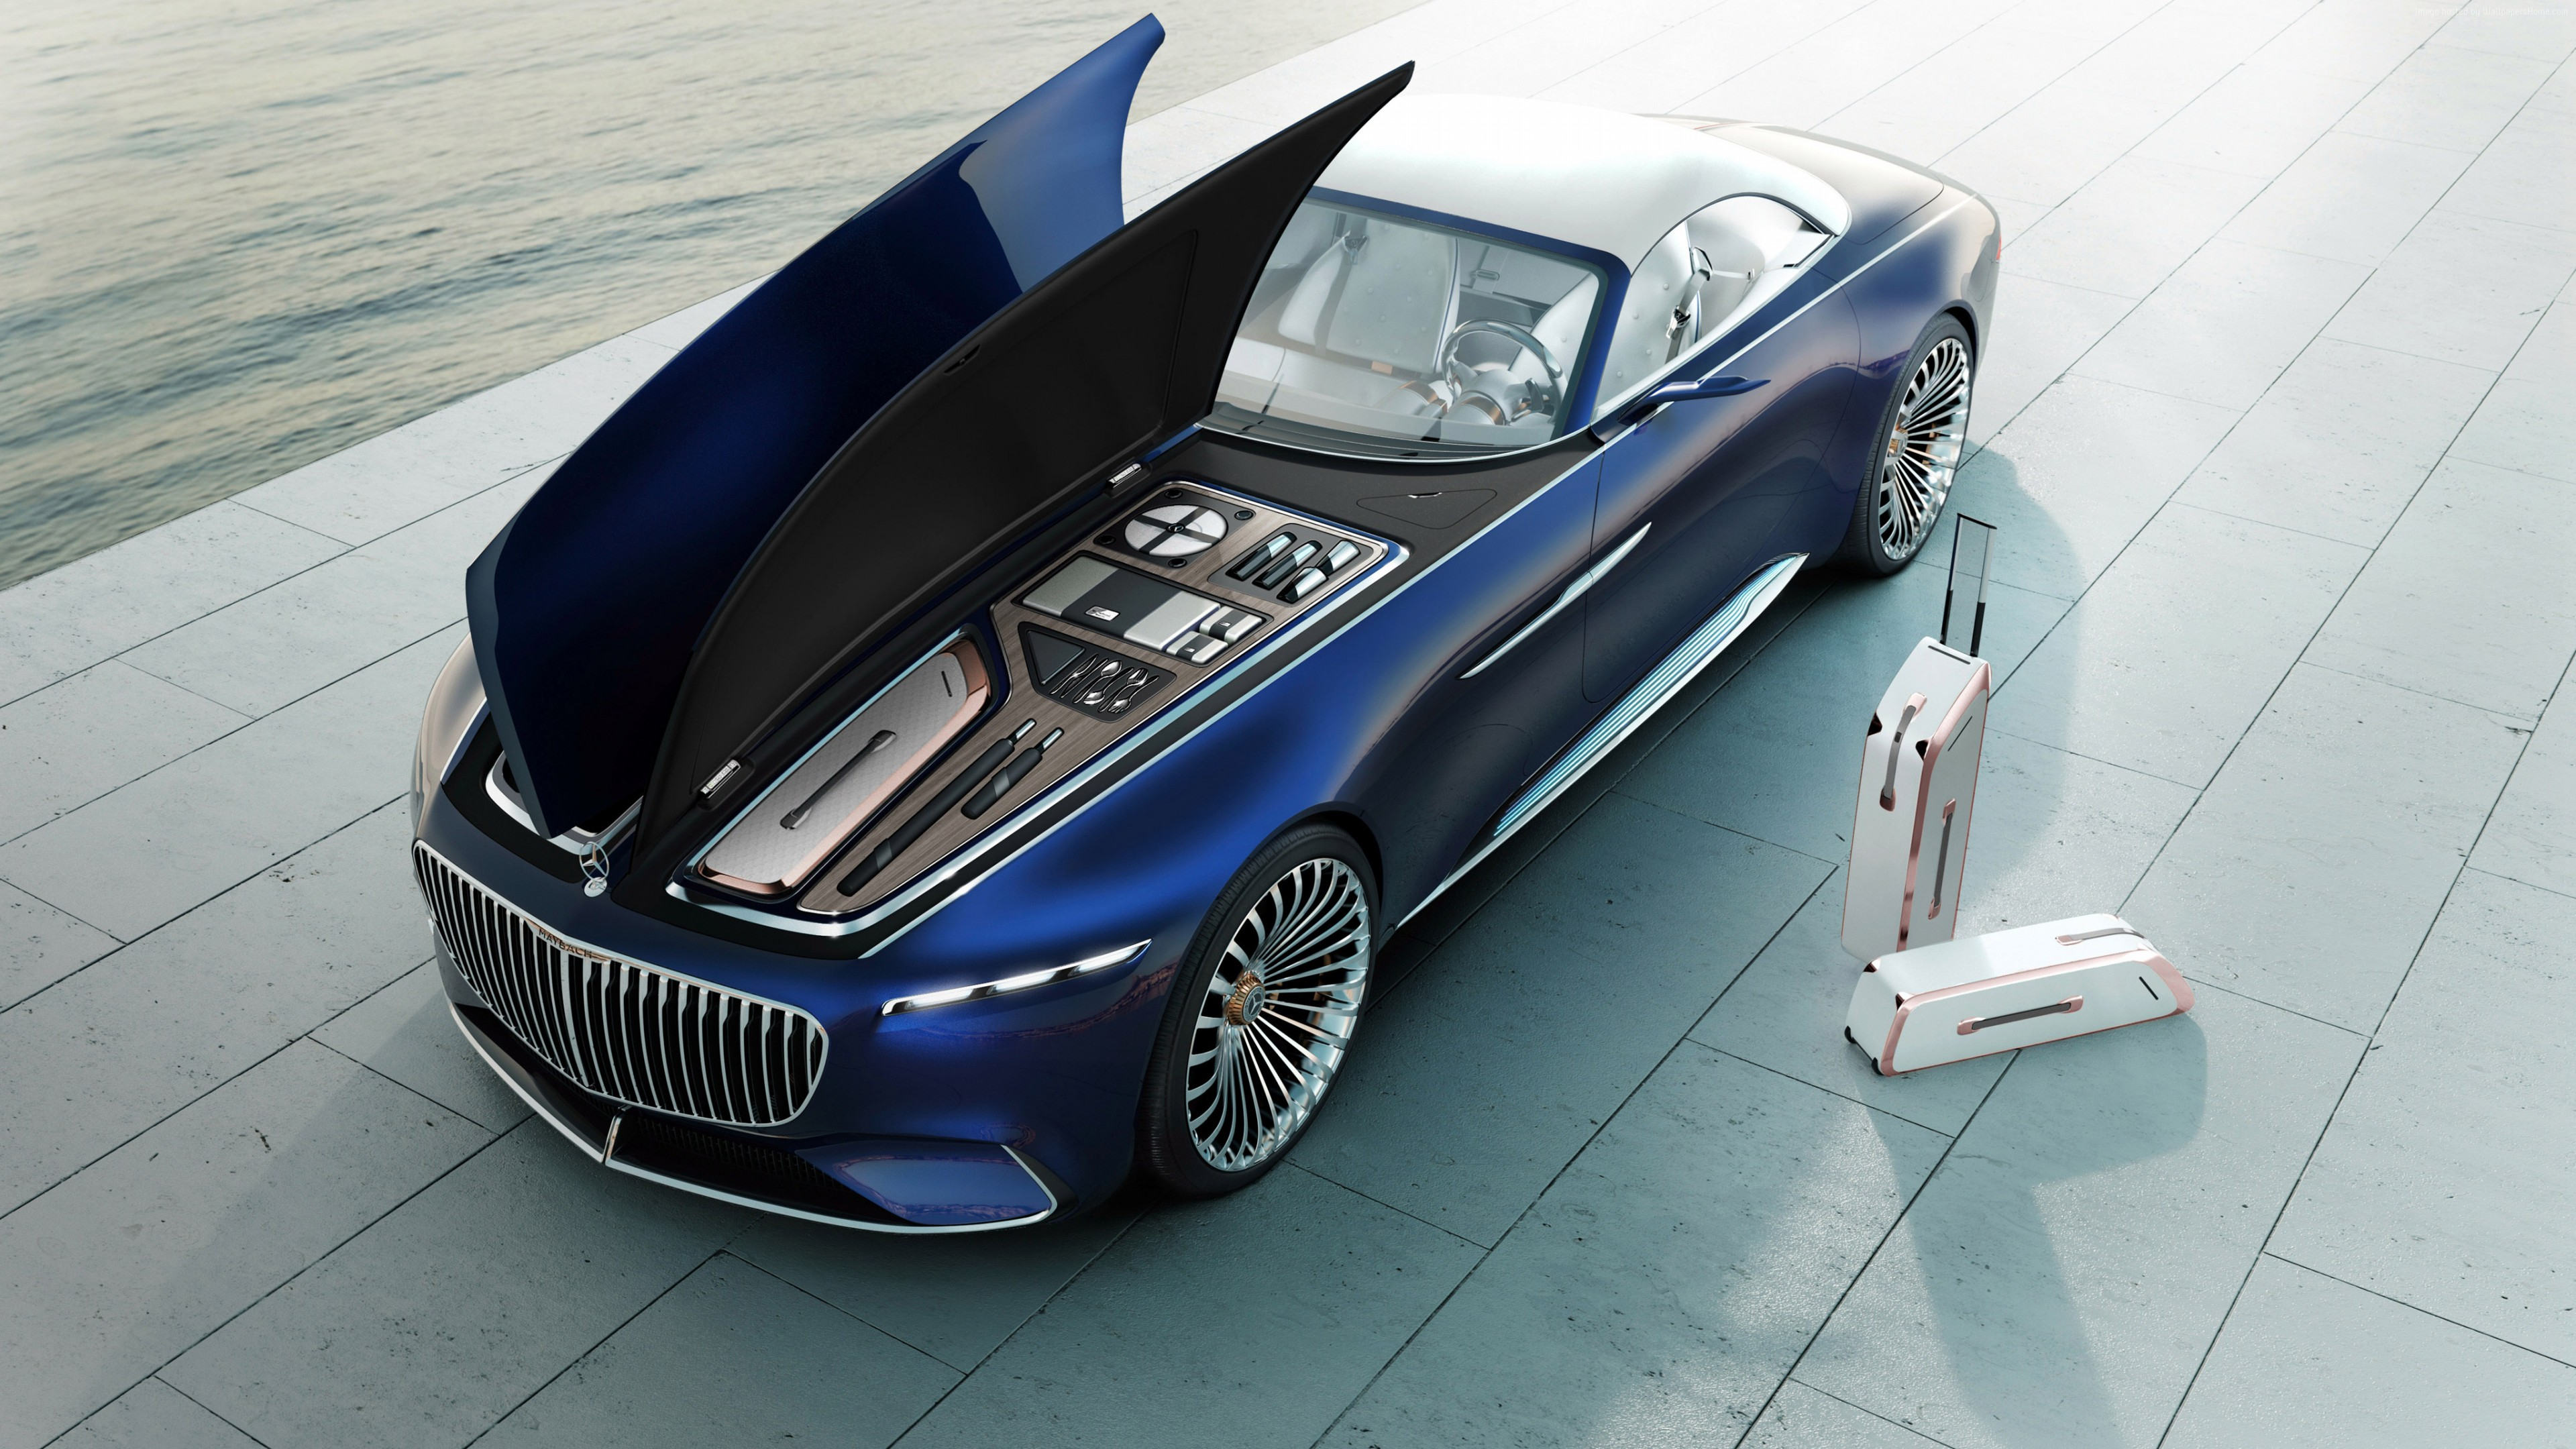 Mercedes electric car 597 Wallpapers and Stock Photos 3840x2160